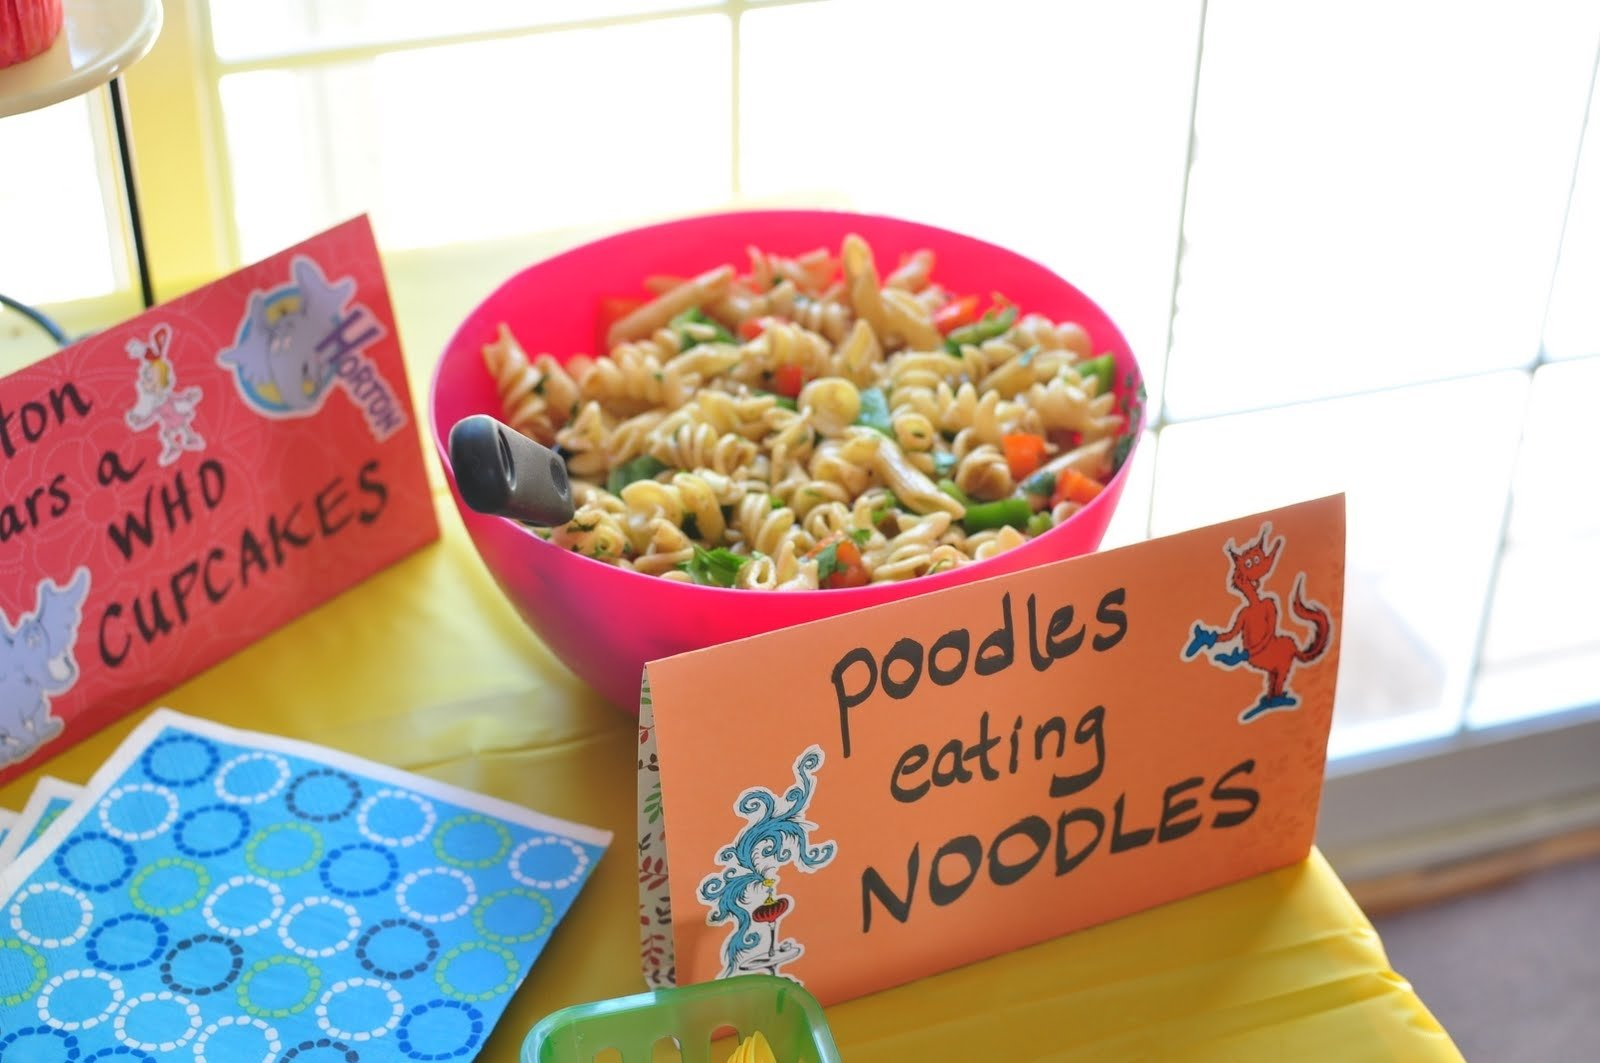 10 Unique Dr Seuss Baby Shower Food Ideas dr seuss themed party baby shower serving from home 1 2020